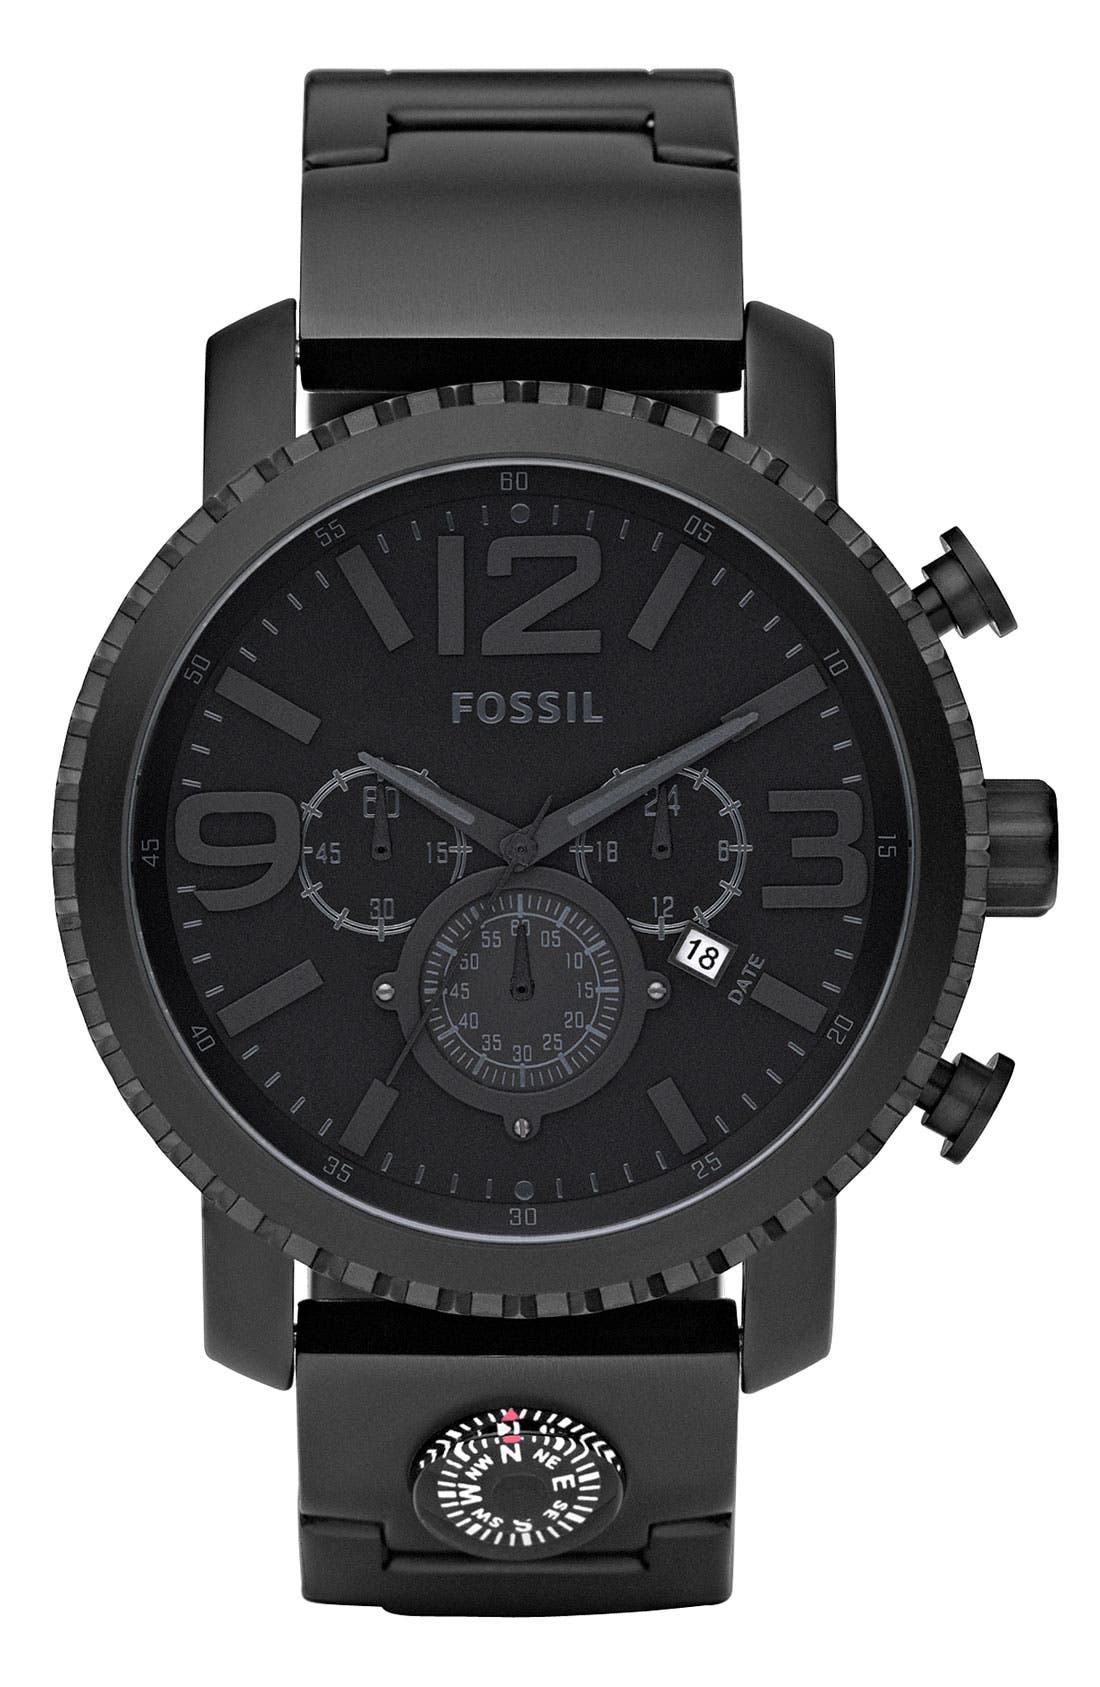 Main Image - Fossil 'Gage' Chronograph Leather Strap Watch, 50mm